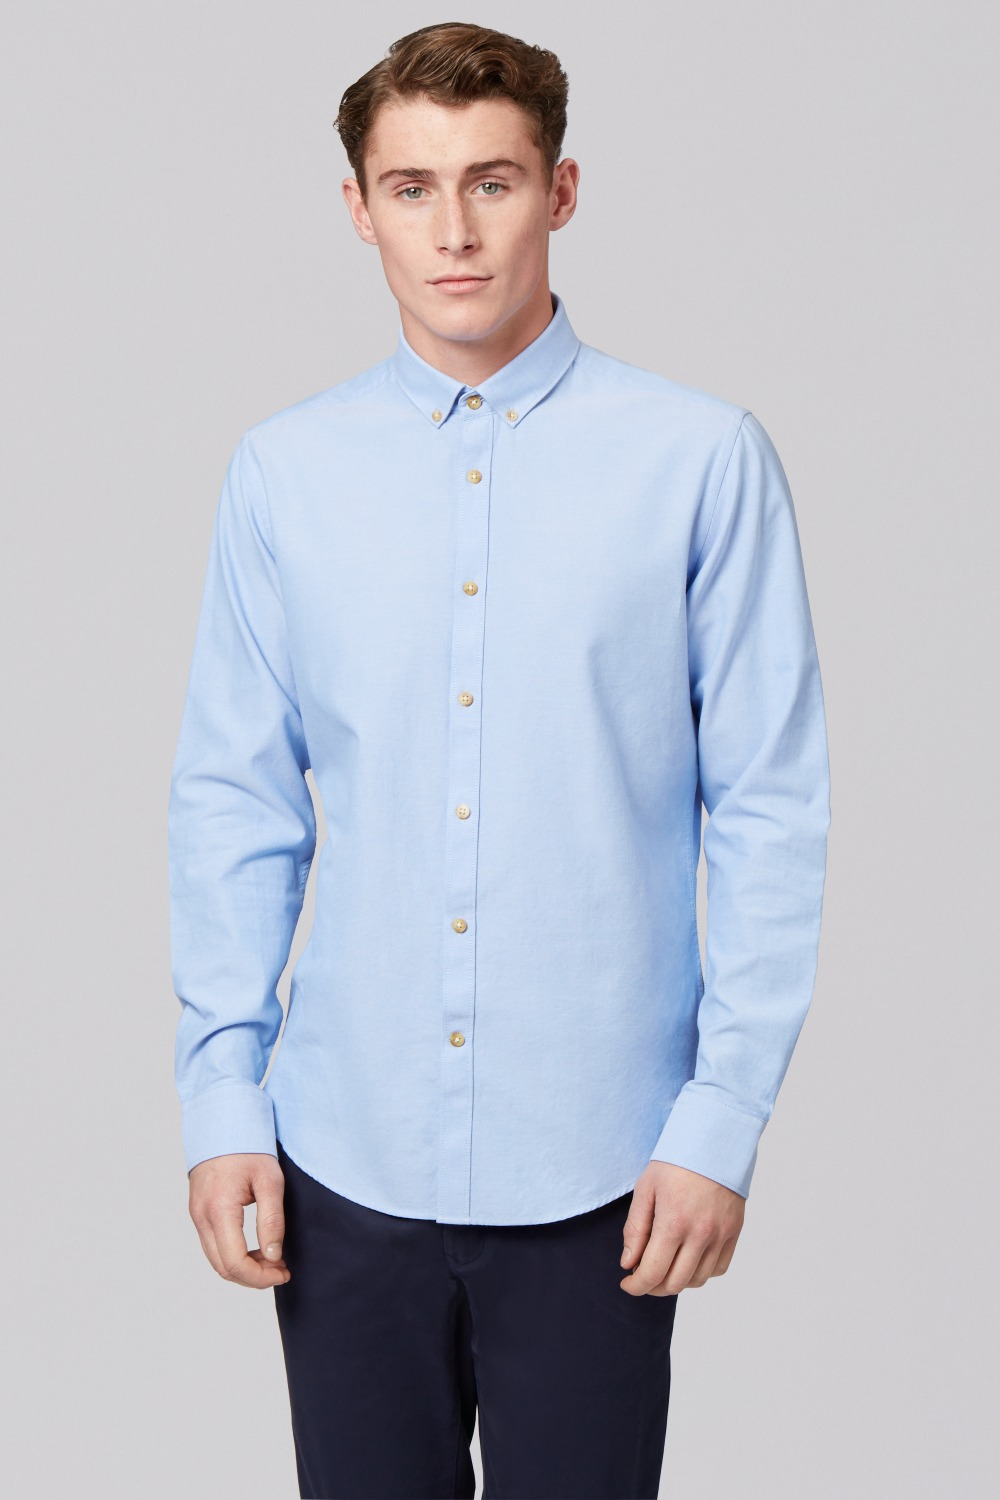 Compare Prices on Oxford Blue Dress Shirt- Online Shopping/Buy Low ...